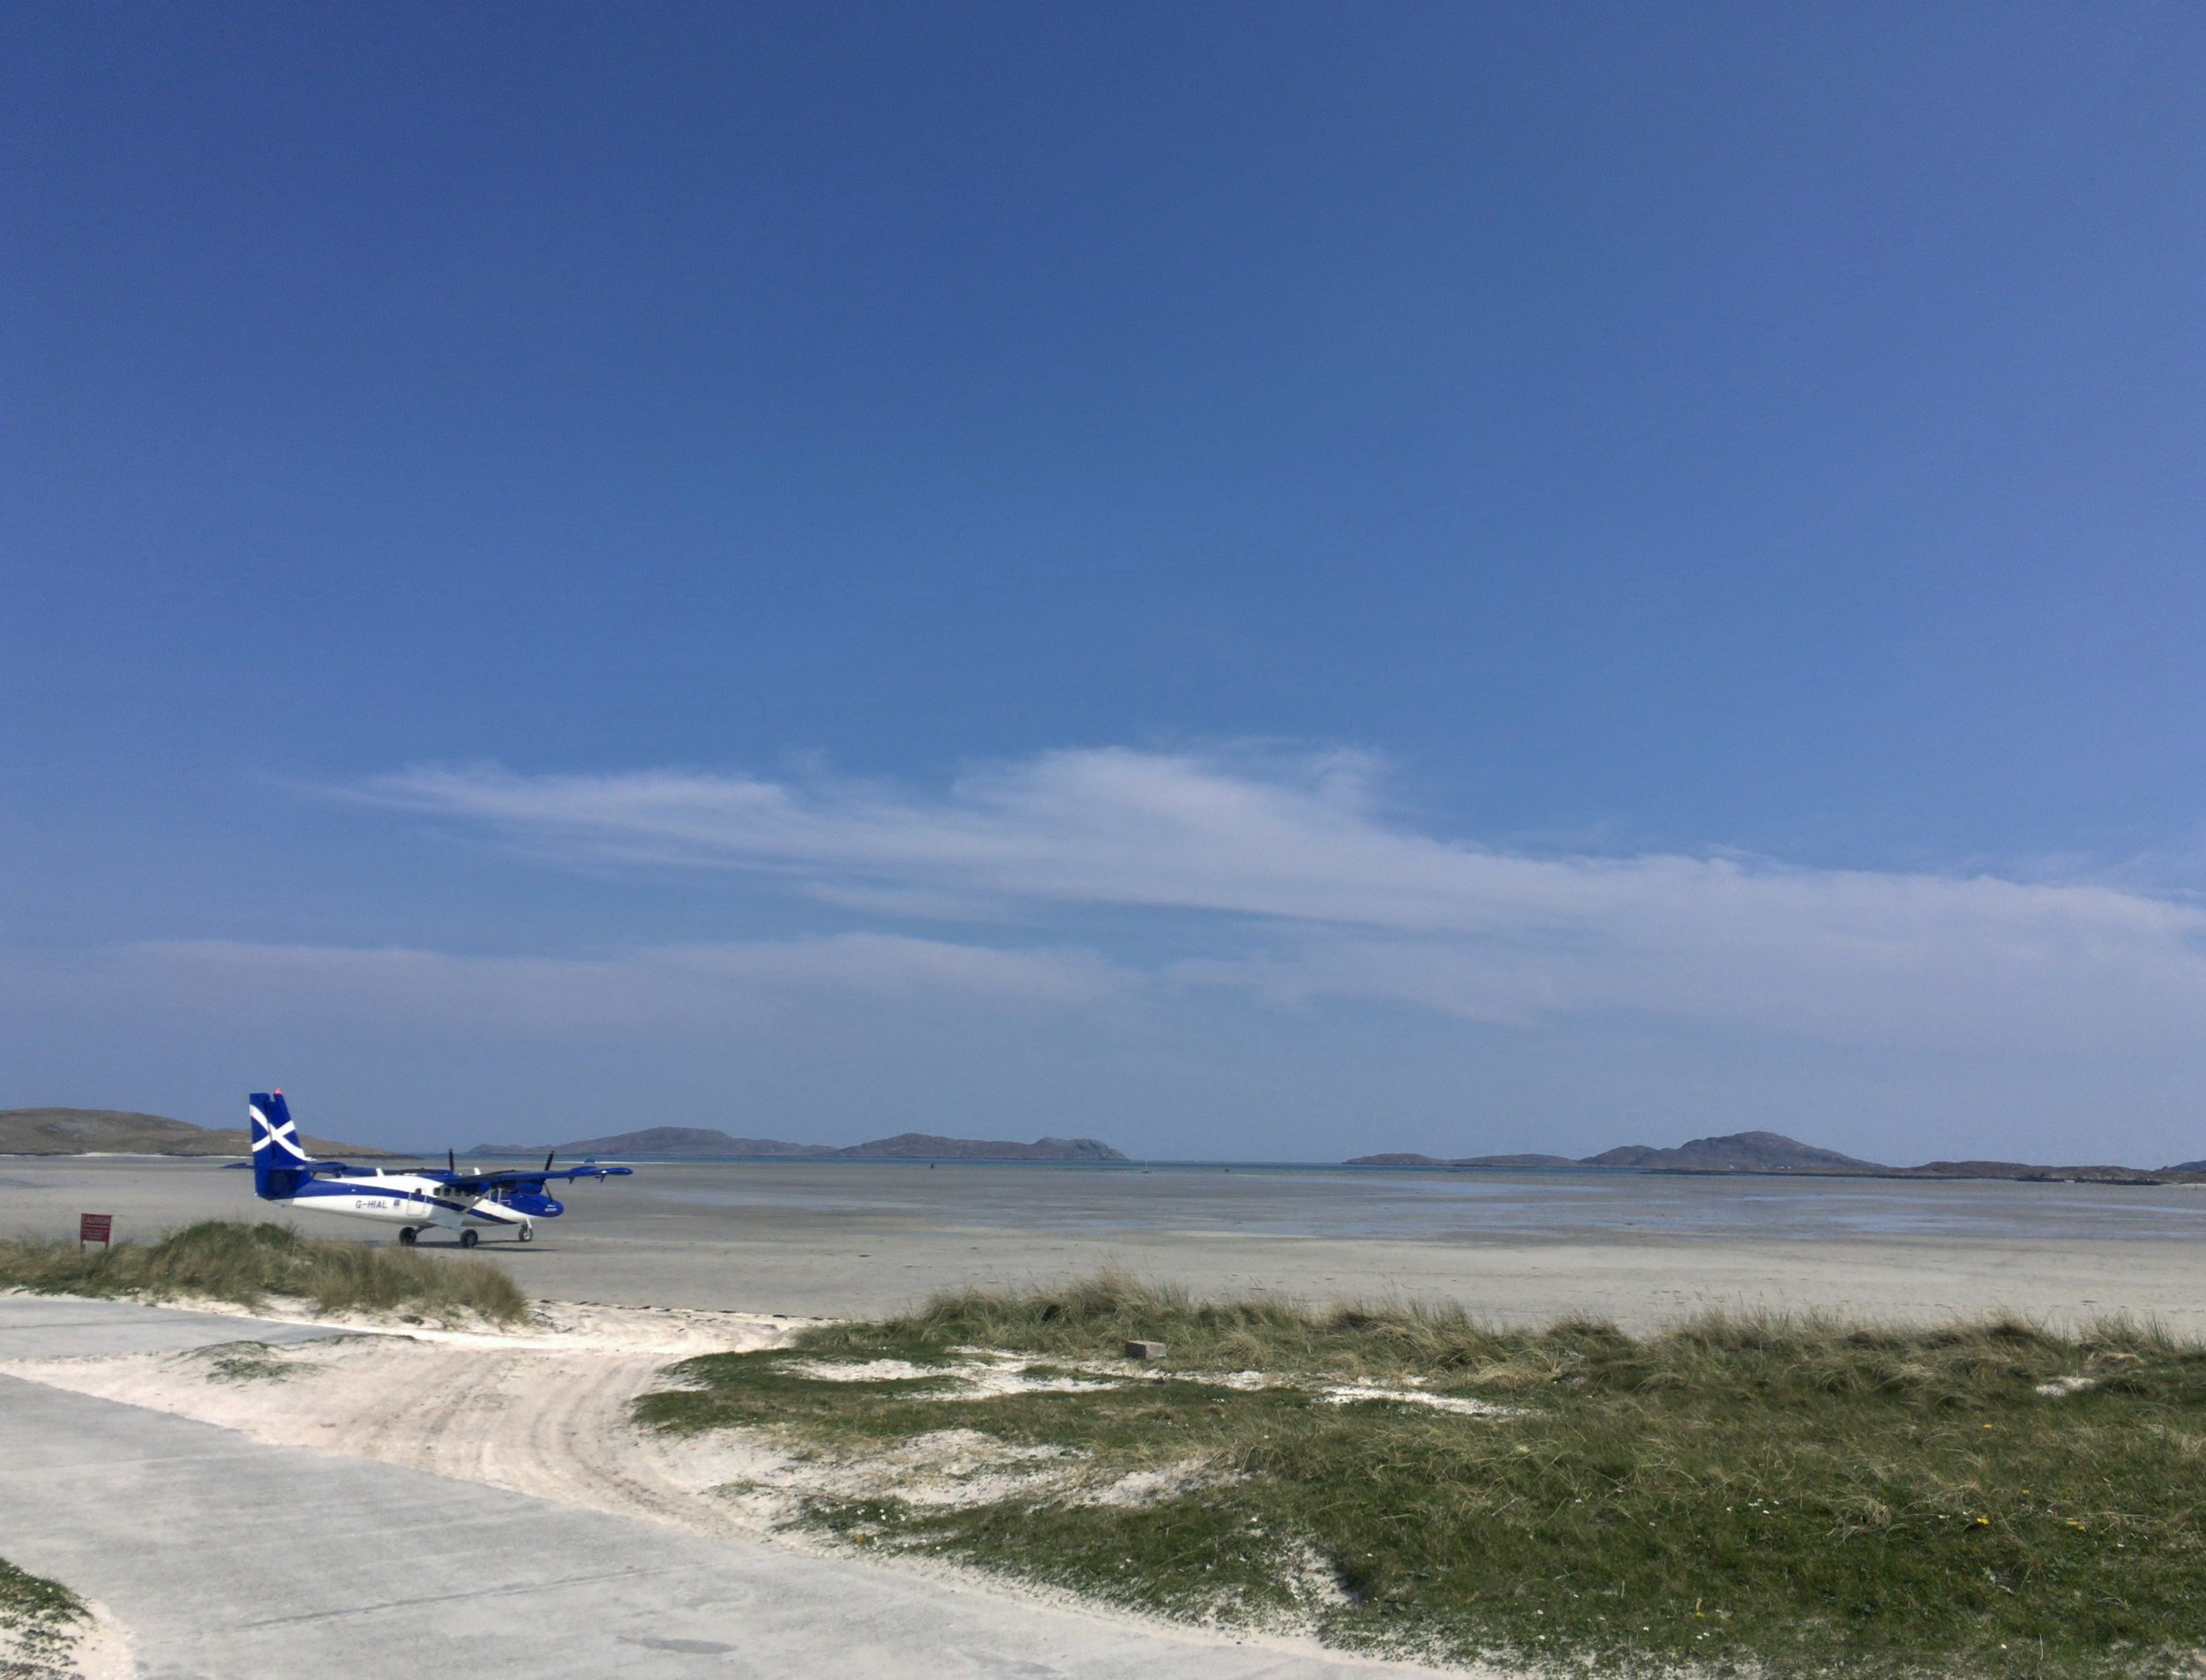 De Havilland Twin Otter ready to take off from Traigh Mhor, Barra (iPhone)